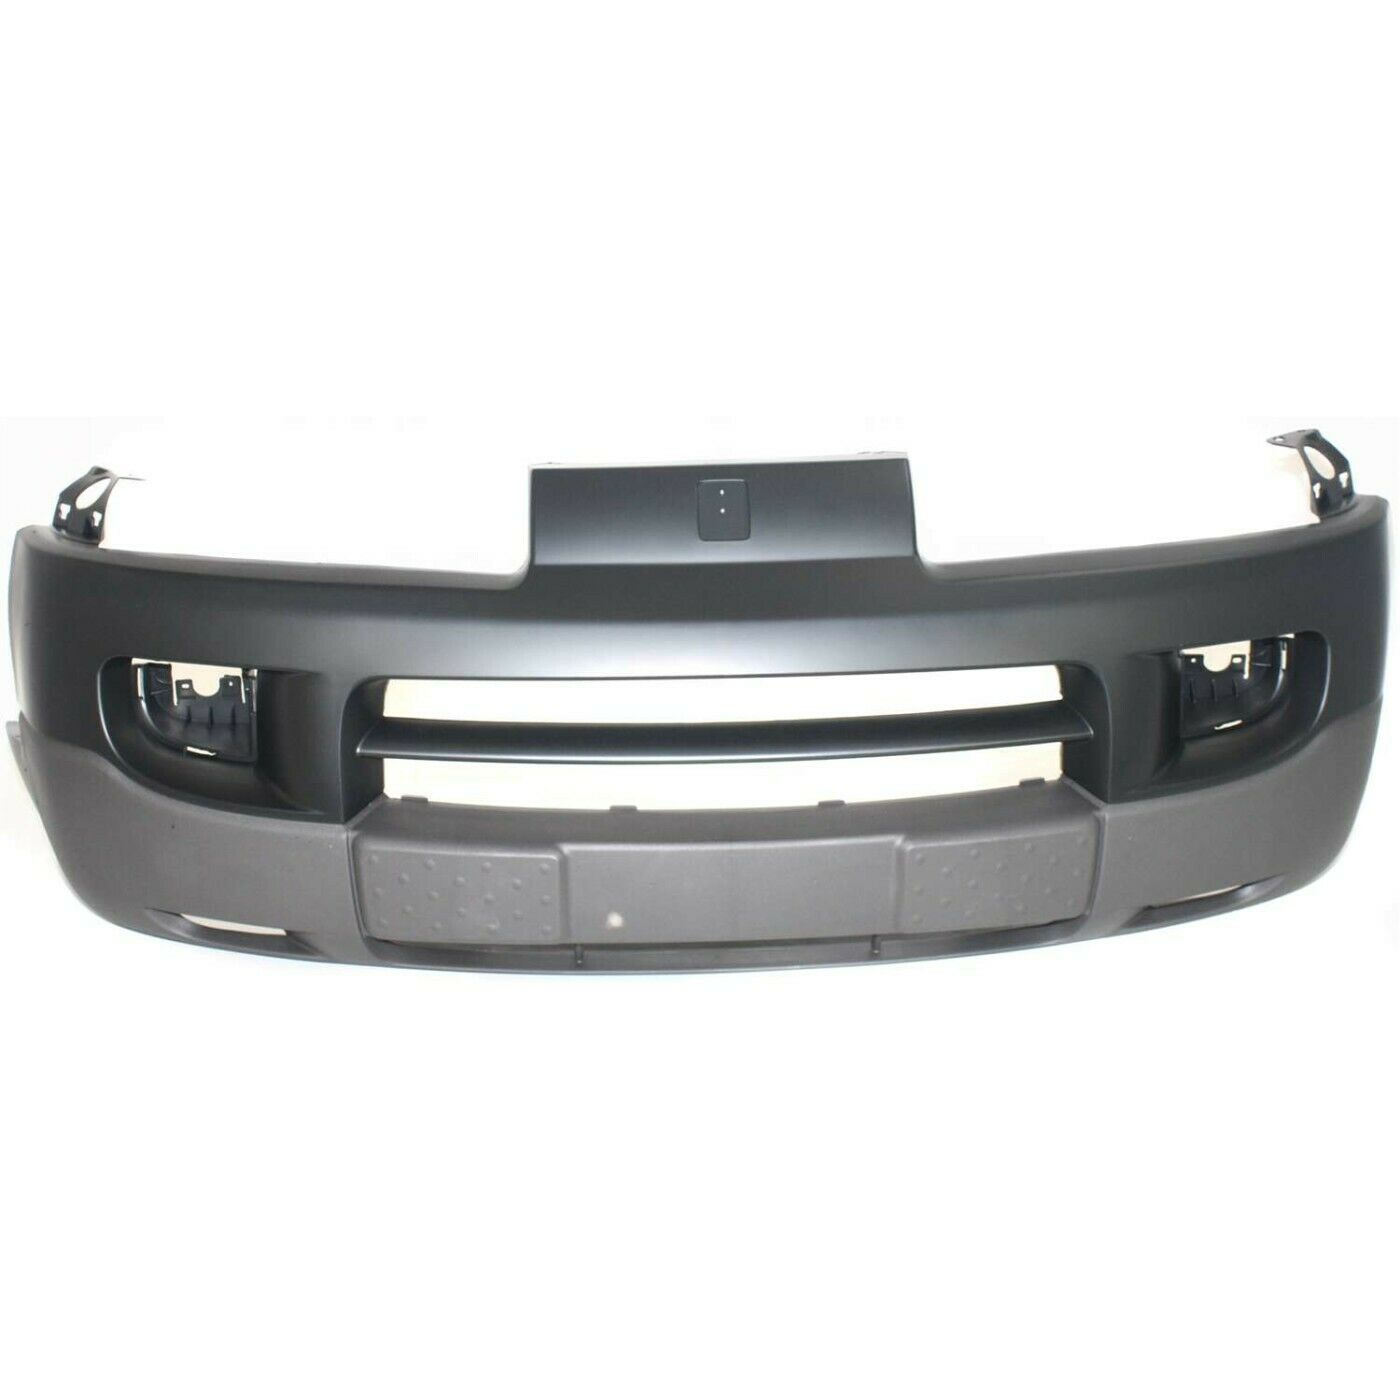 2002-2005 Saturn Vue (W/O Red Line) Front Bumper